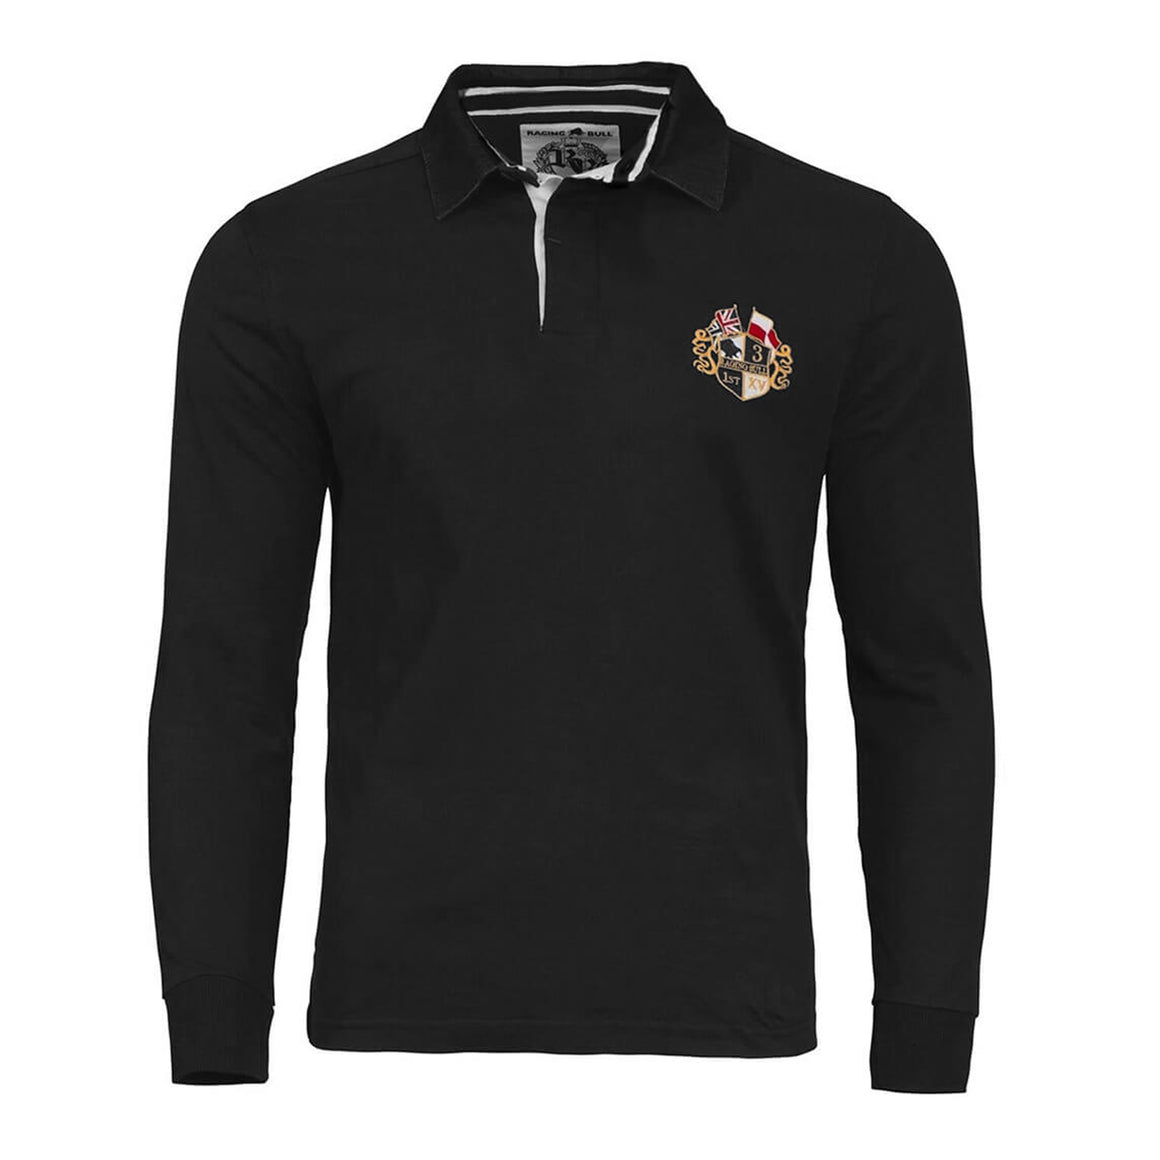 Signature Rugby Shirt for Men in Black